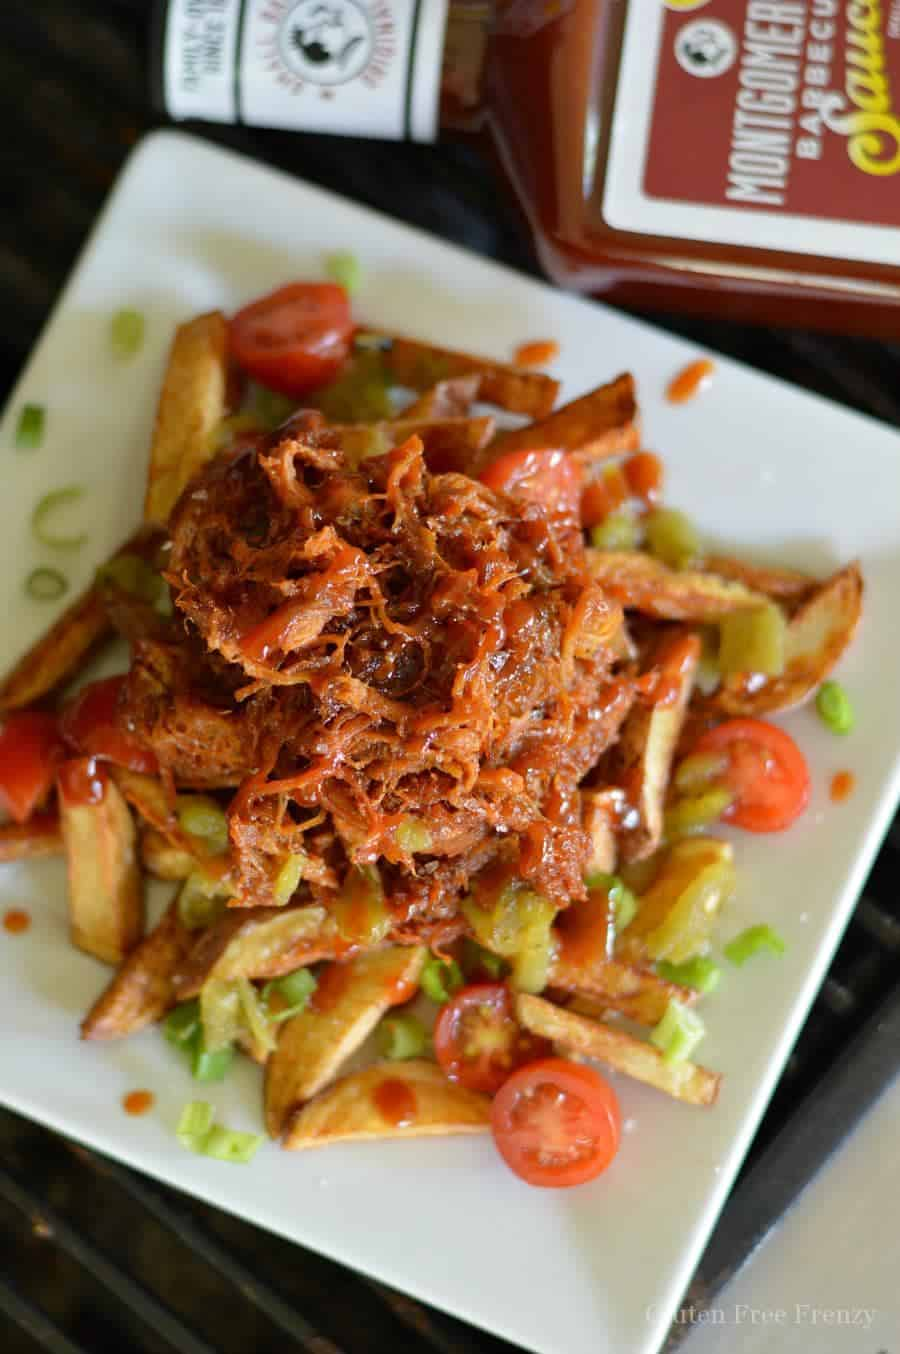 These shredded pork bbq french fries are mouthwatering! My hubby was in awe with how fork tender the Montgomery Inn BBQ ribs were and said they were some of the best he'd had! Don't miss this delicious dinner. glutenfreefrenzy.com